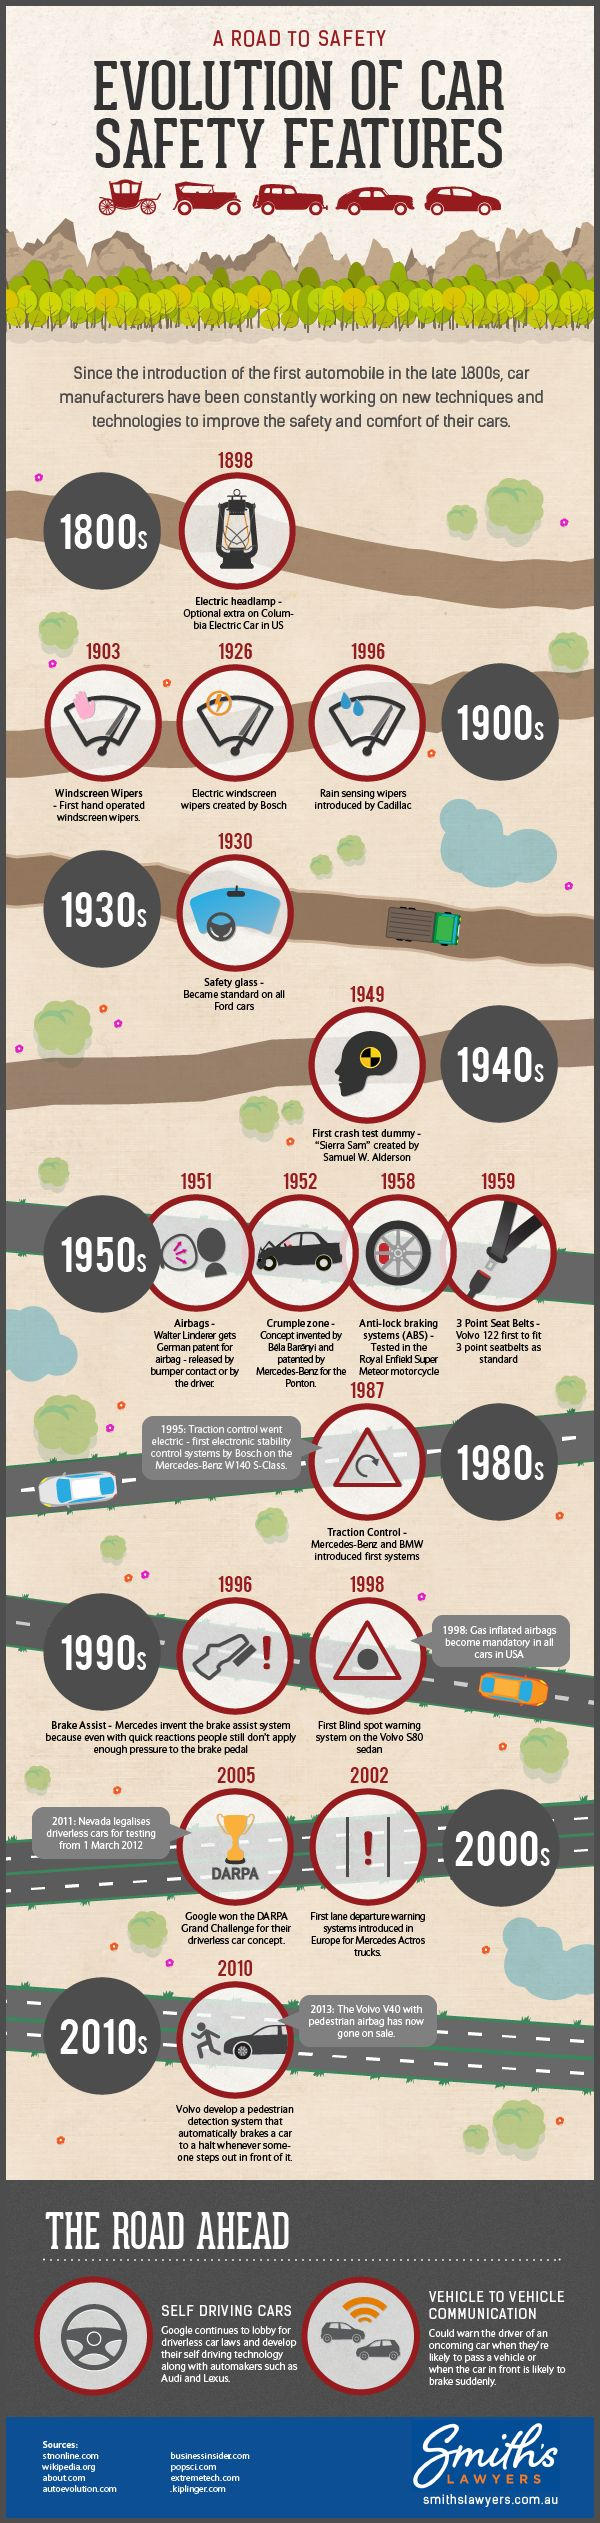 The Evolution of Car Safety Features #infographic  Designed by Aran Jackson  www.aranjackson.co.uk